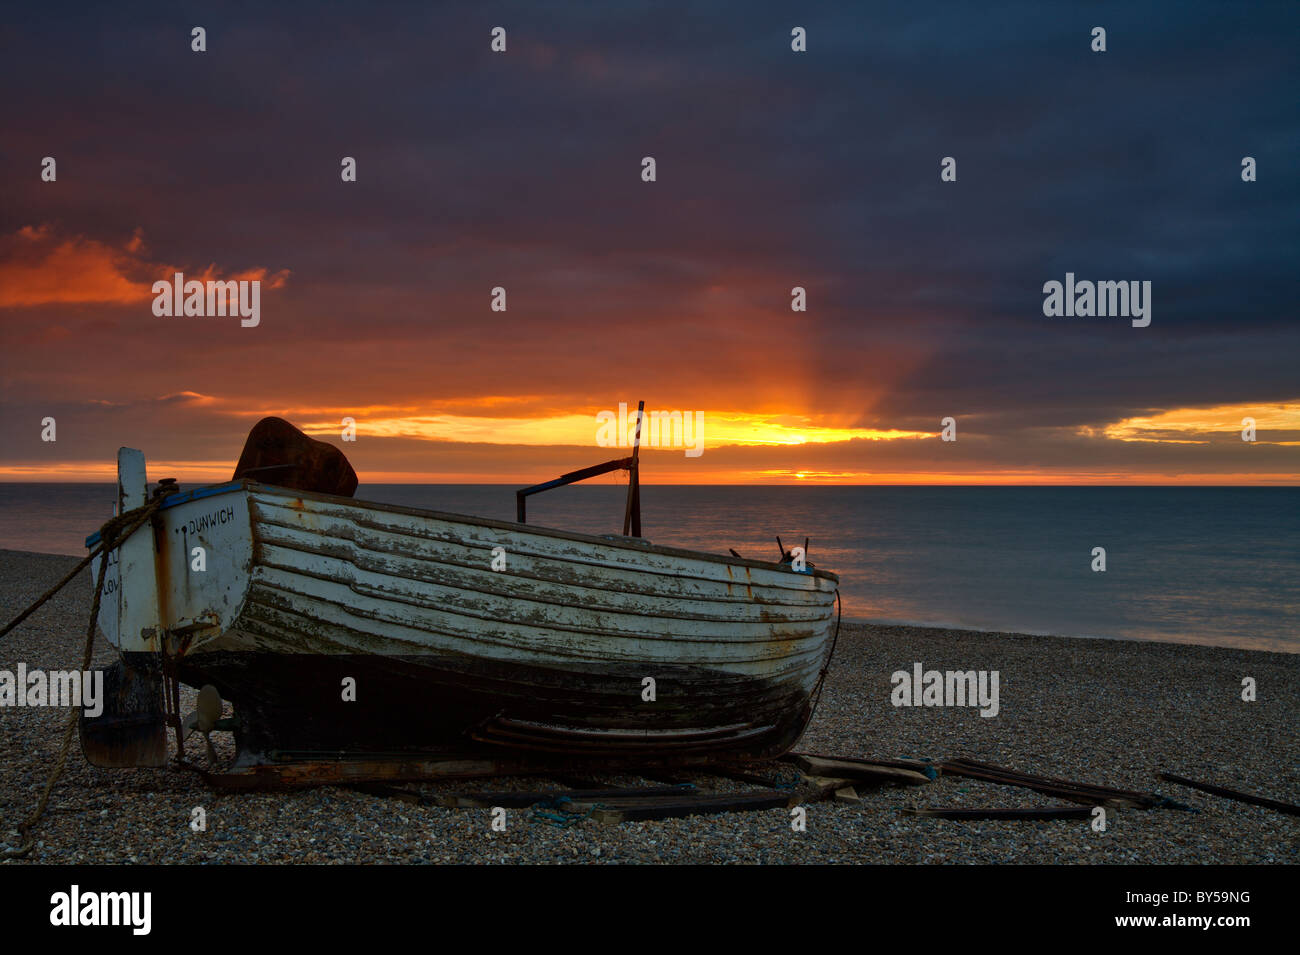 Sunrise Dunwich Beach and traditional Suffolk Fishing boat on shore - Stock Image